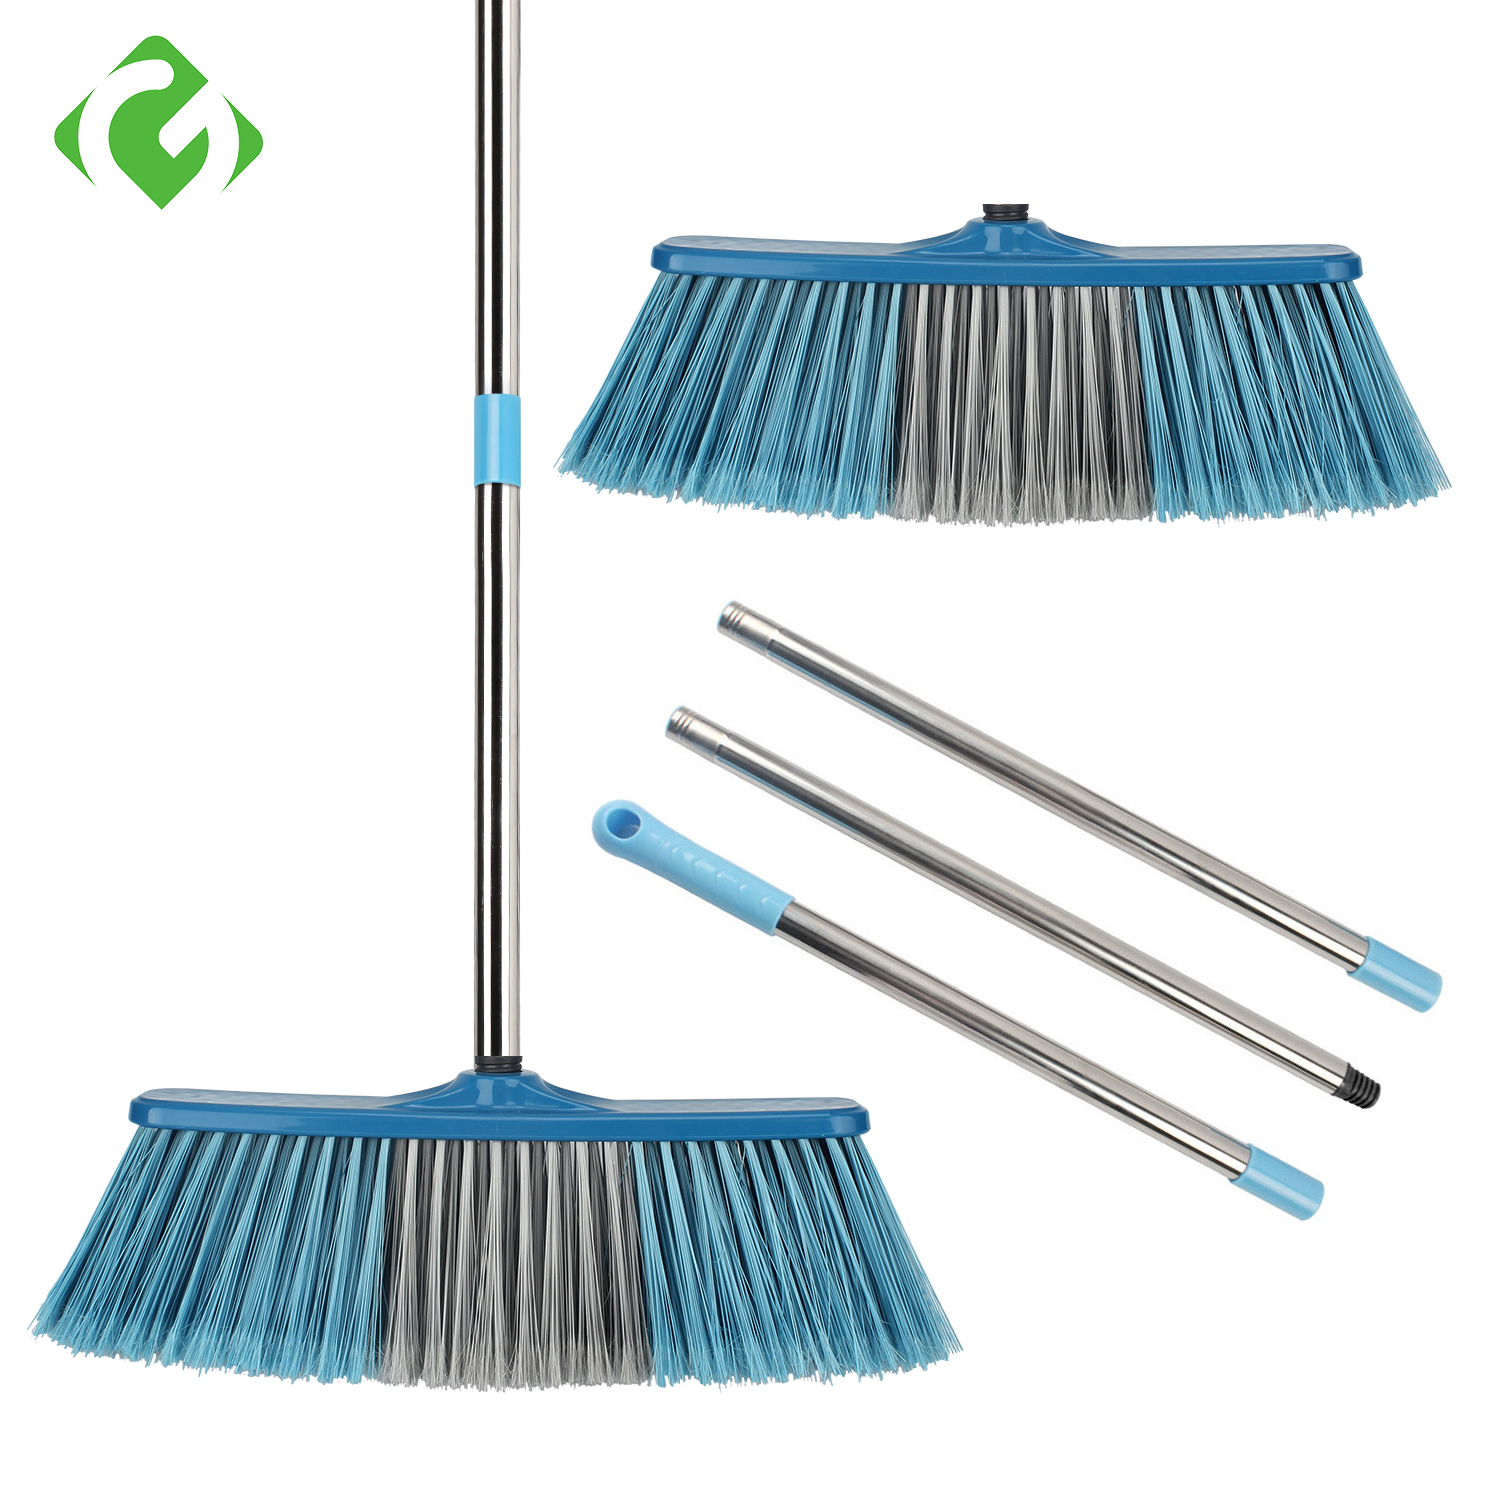 Big Floor Cleaning Broom Adjustable Long Handle Stiff Bristle Grout Brooms Scrubber for Cleaning Outdoor Courtyard Warehouse